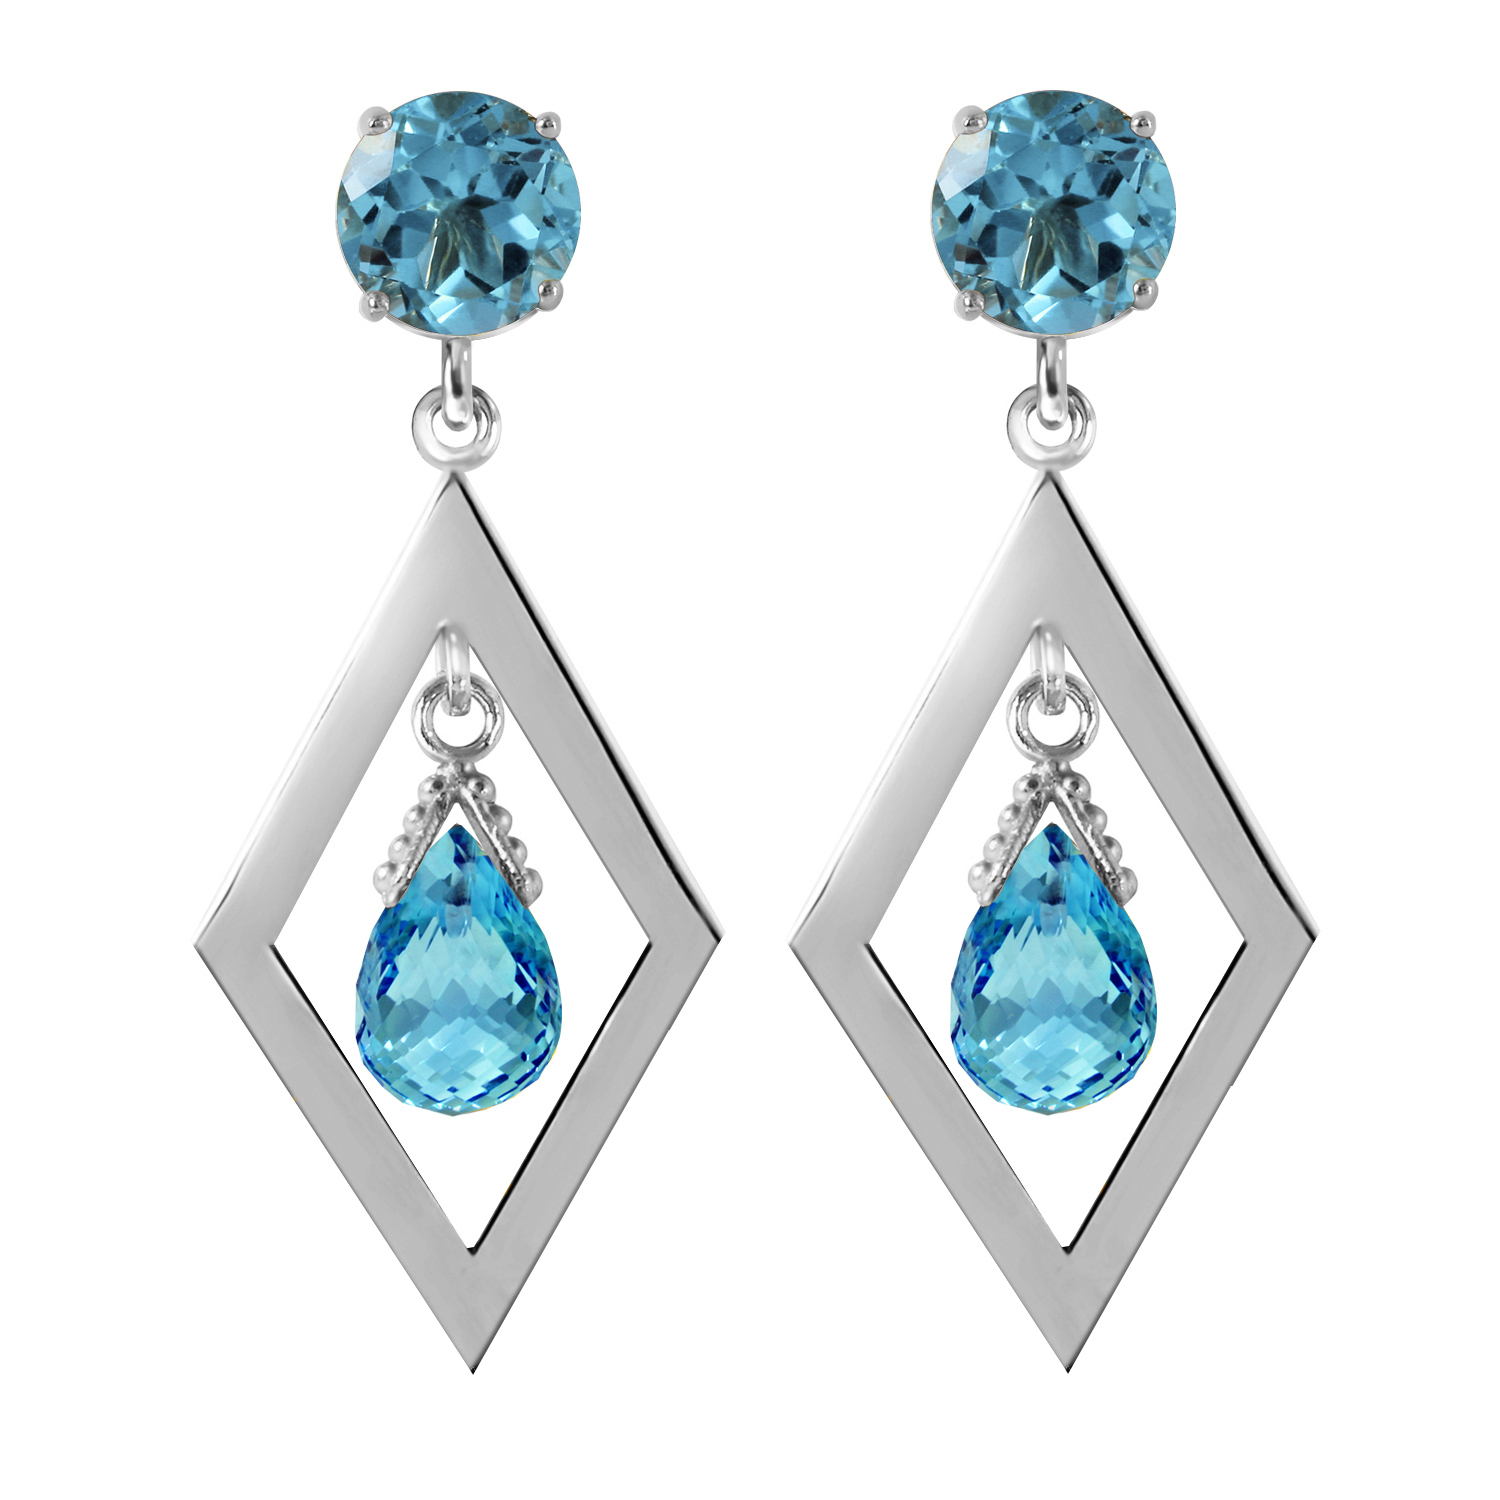 Primary image for 2.4 Carat 14K Solid Gold Make A Comeback Blue Topaz Earrings